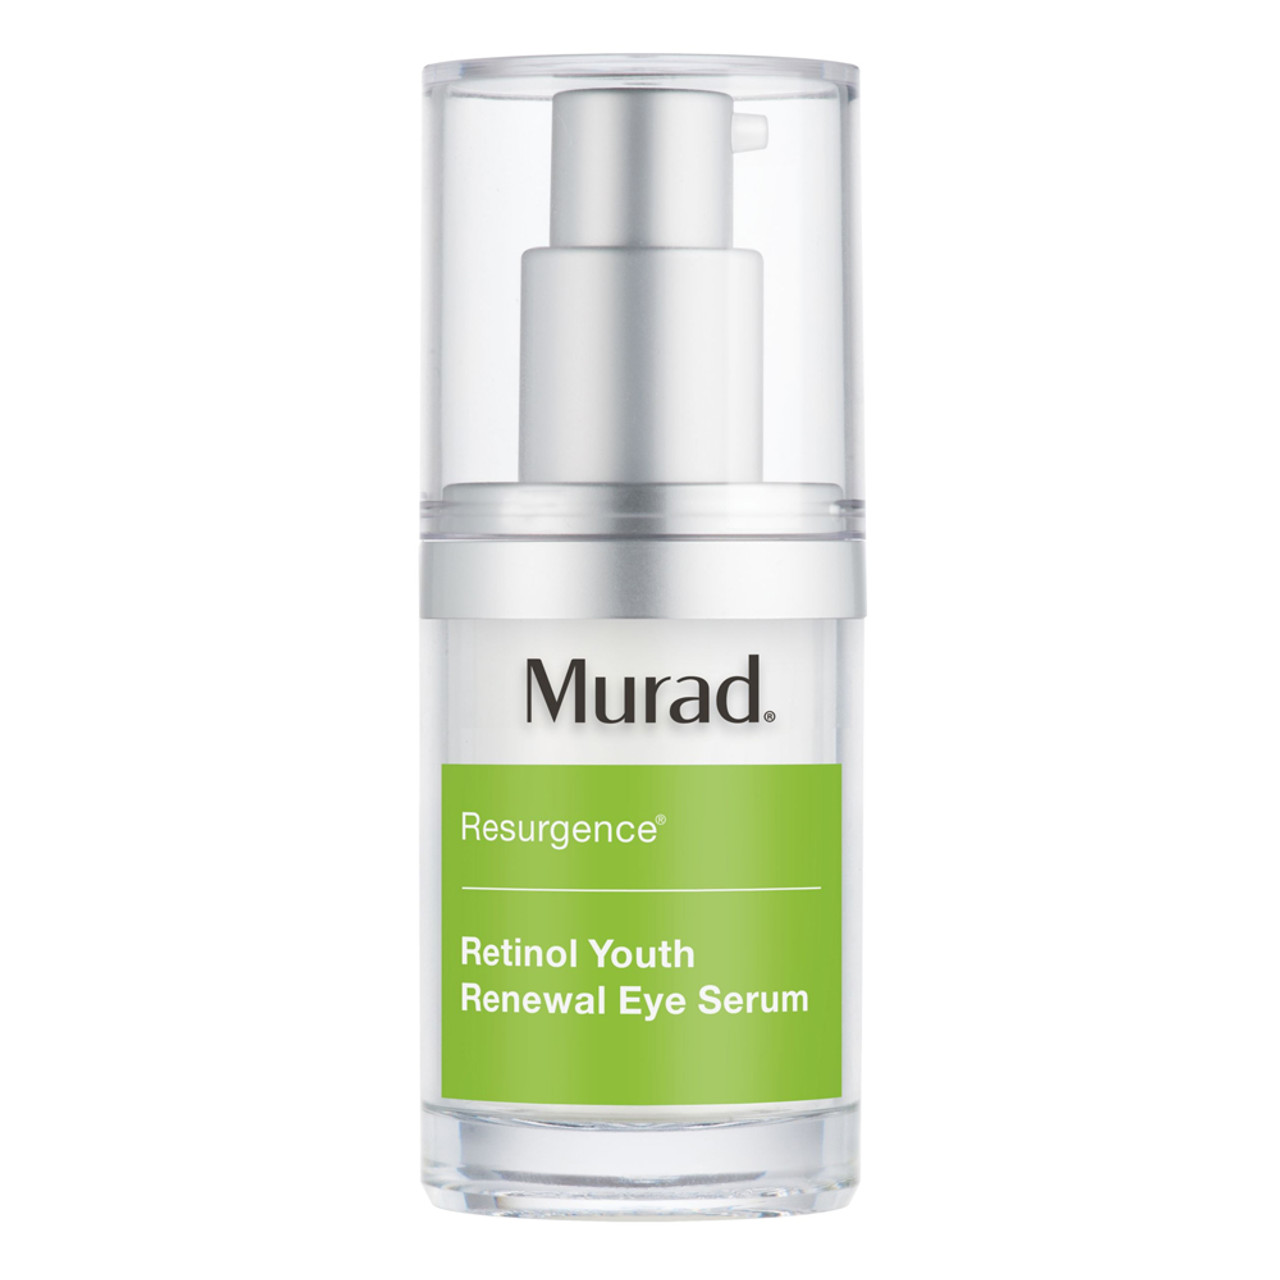 Murad Resurgence™ Retinol Youth Renewal Eye Serum